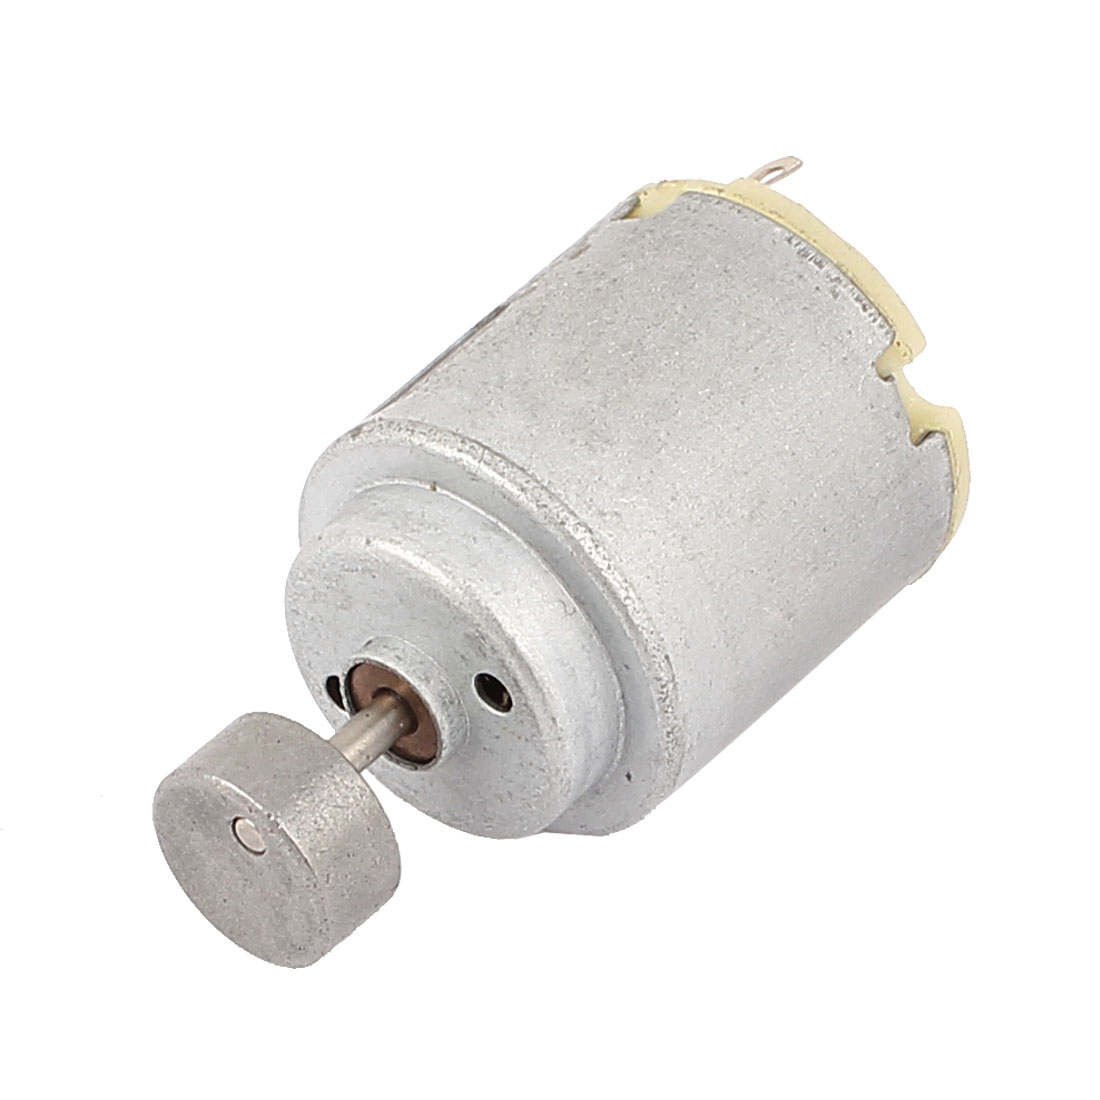 DC 3V-6V 16500RPM High Torque Micro Mini Small Vibration Motor for Massager